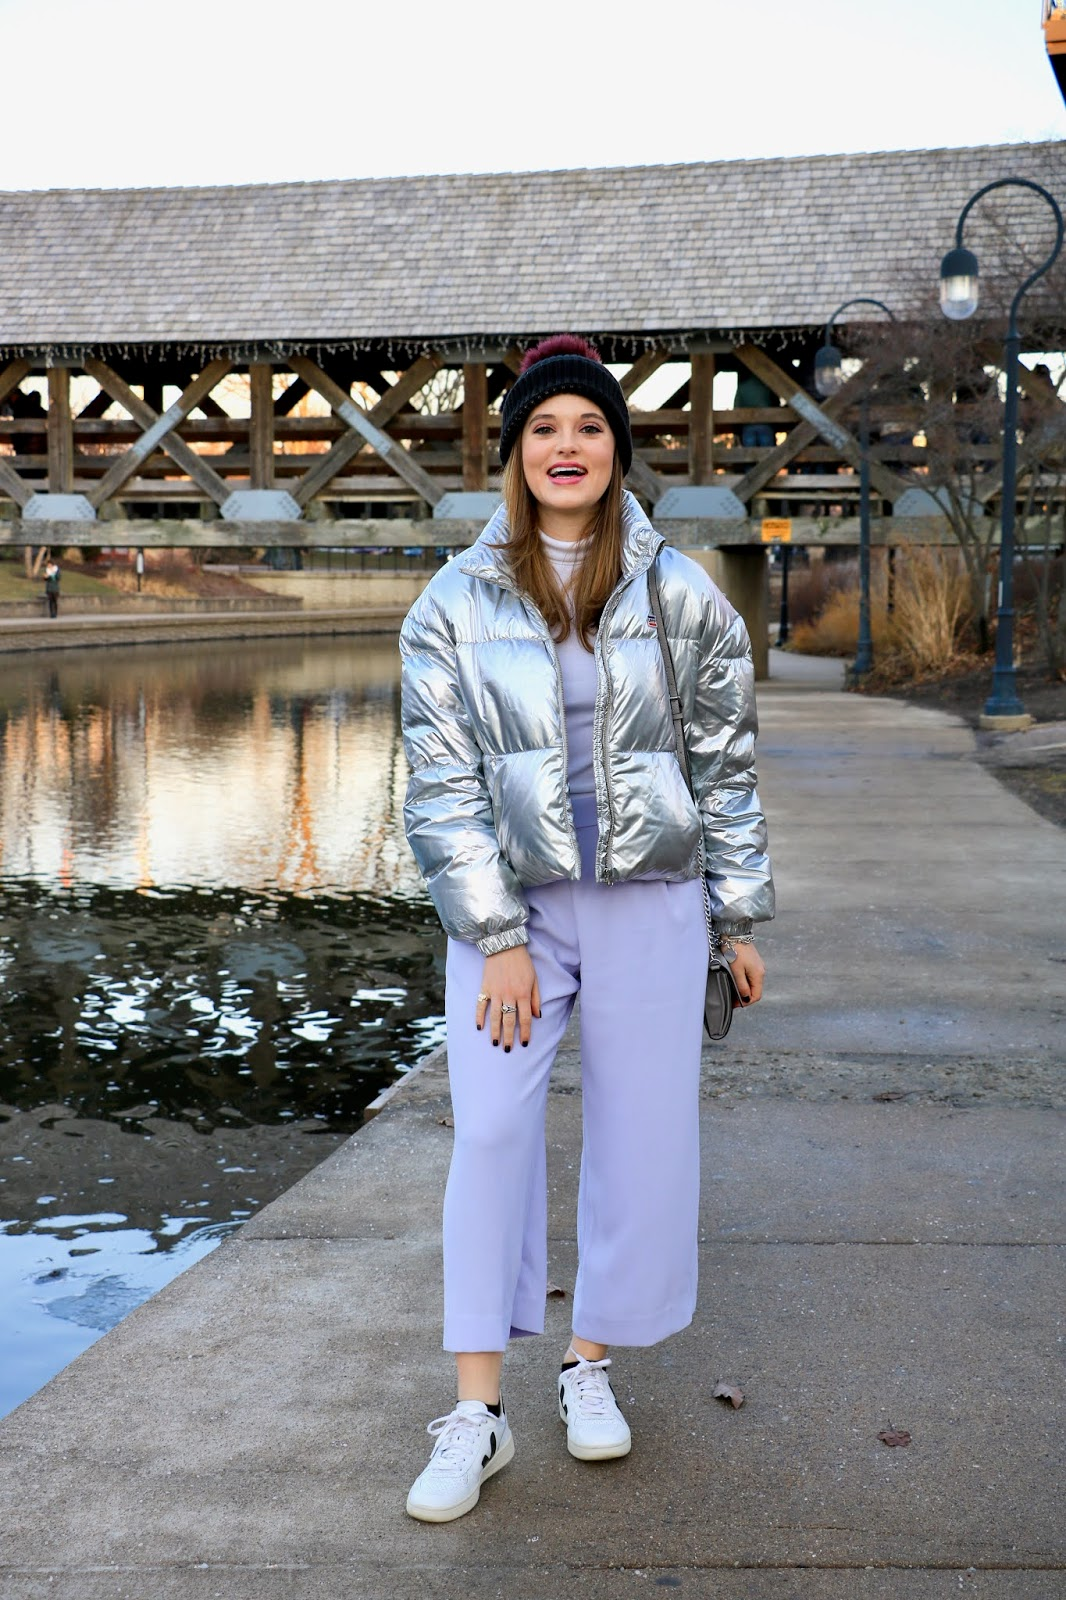 Nyc fashion blogger Kathleen Harper wearing a silver puffer coat outfit.